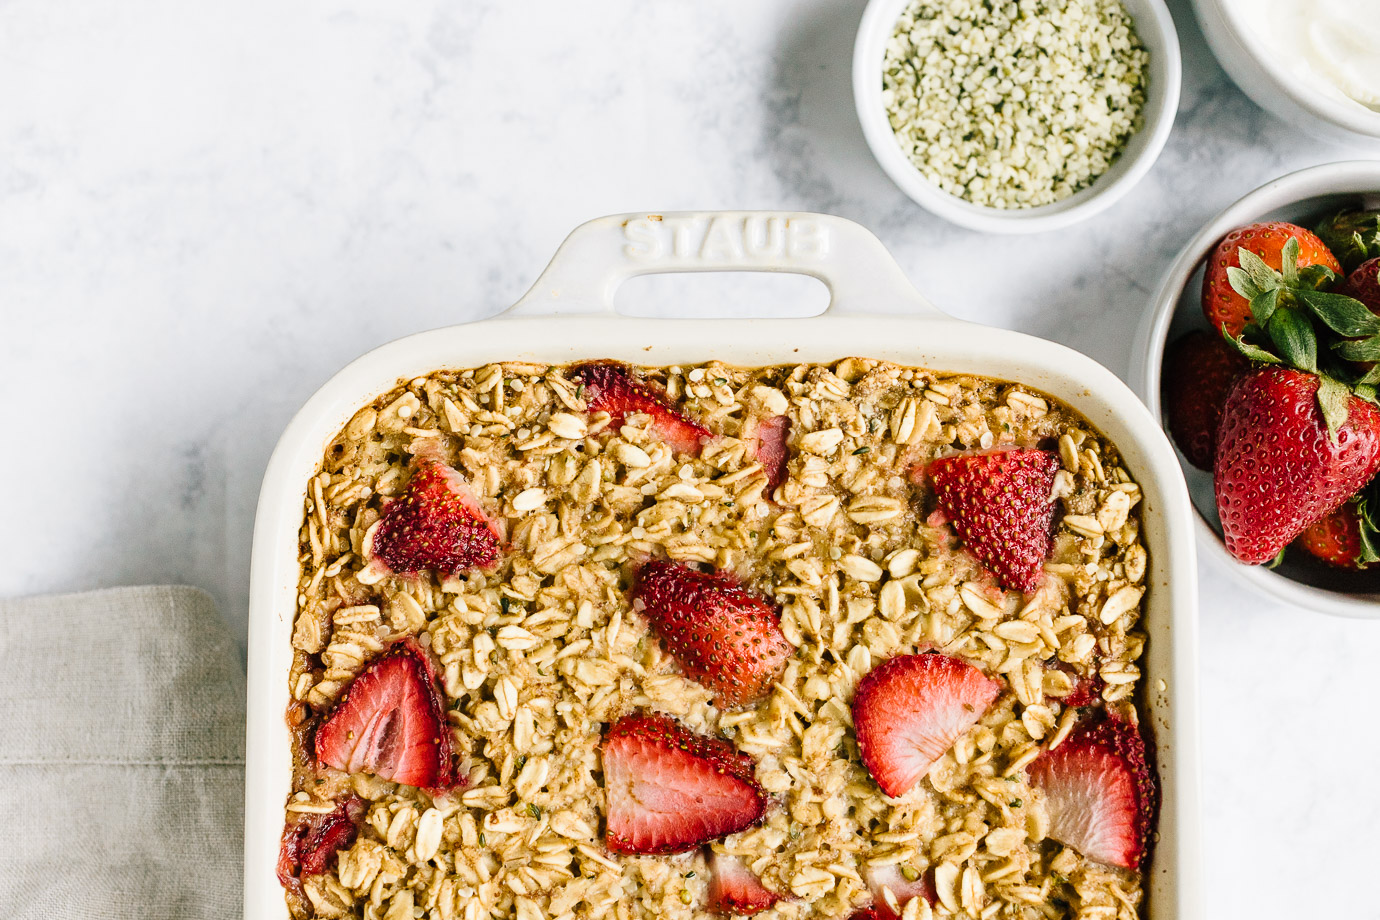 Strawberry Baked Oatmeal with Hemp Seeds